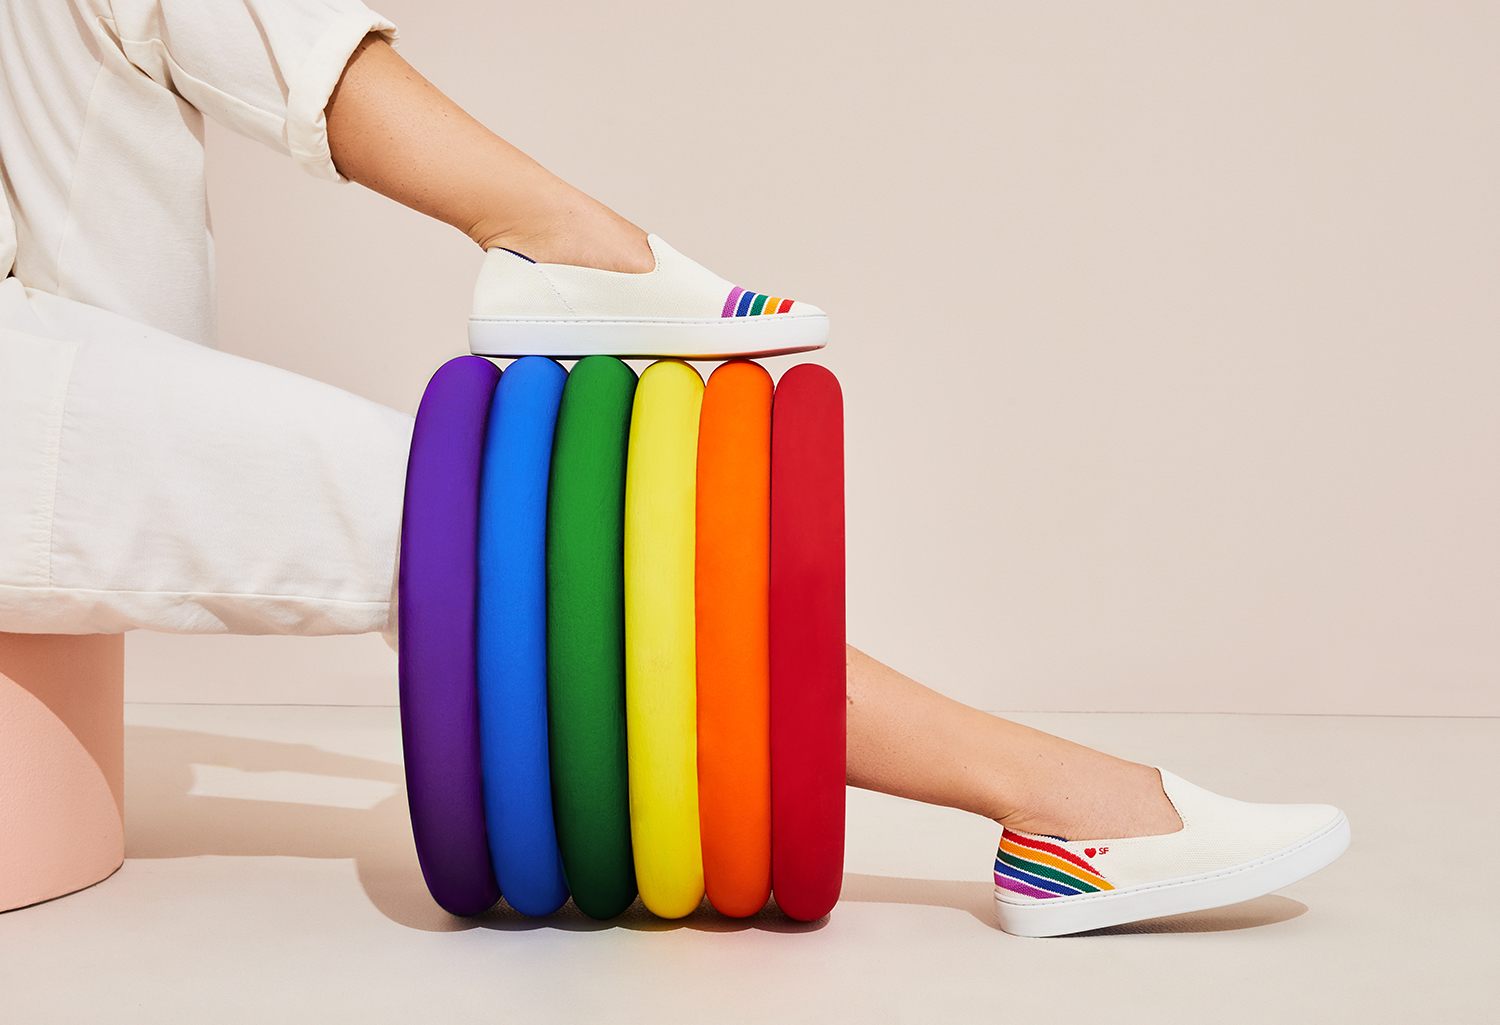 The Sneaker in Rainbow shown from the side on-model with a prop.